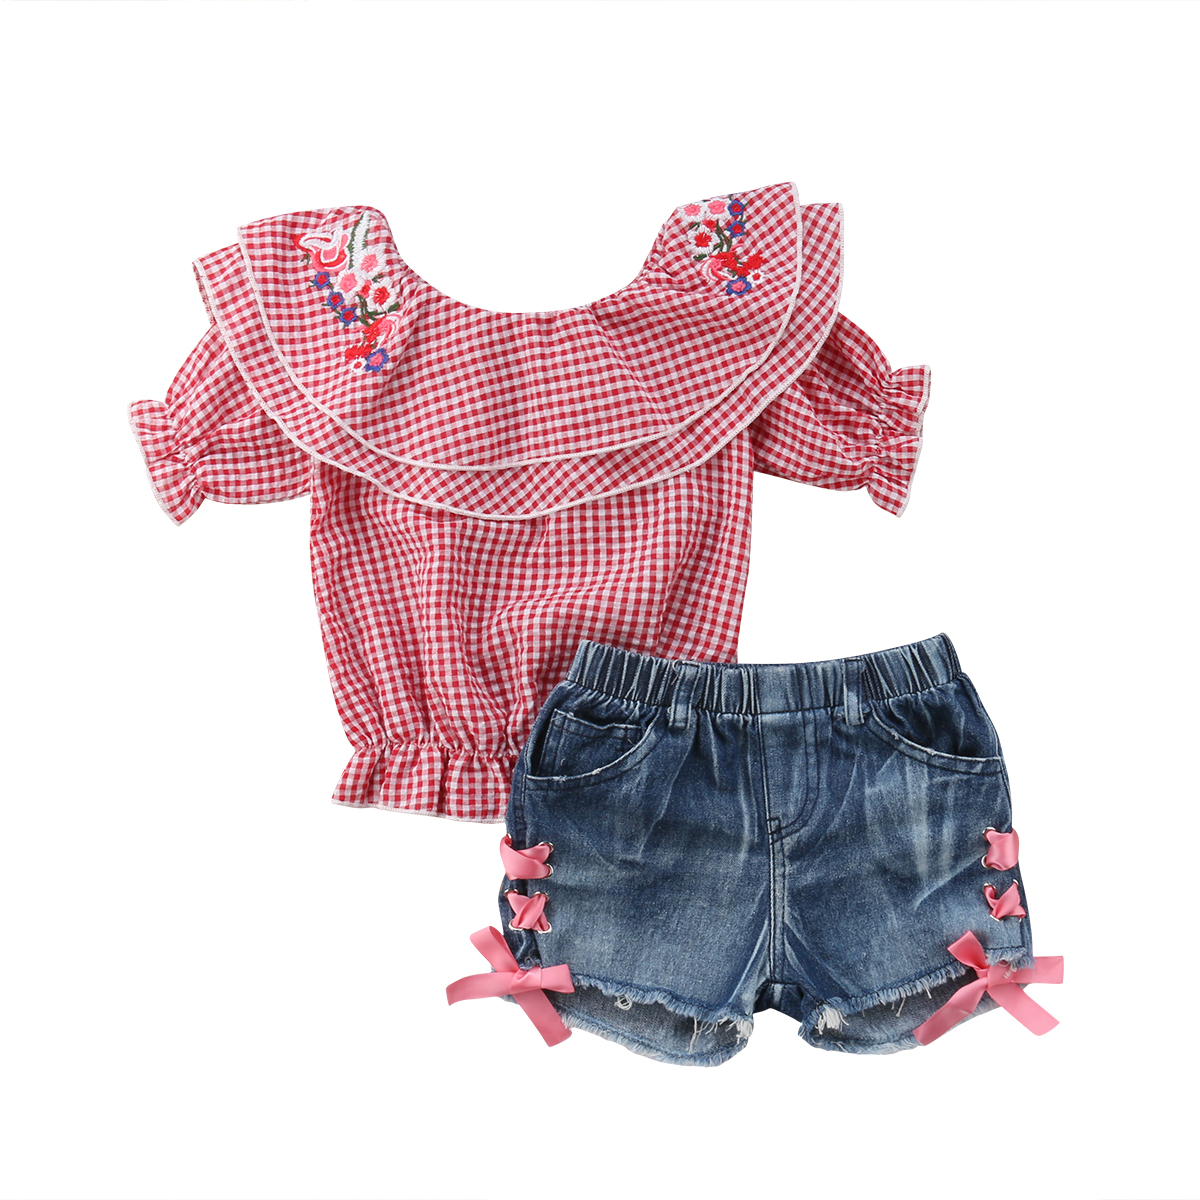 99930d7e0f6e Detail Feedback Questions about Toddler Kids Baby Girls Clothes Sets Off  Shoulder Flower Tops Denim Shorts Belt Cute 2pcs Clothing Outfits Girl 1 6T  on ...